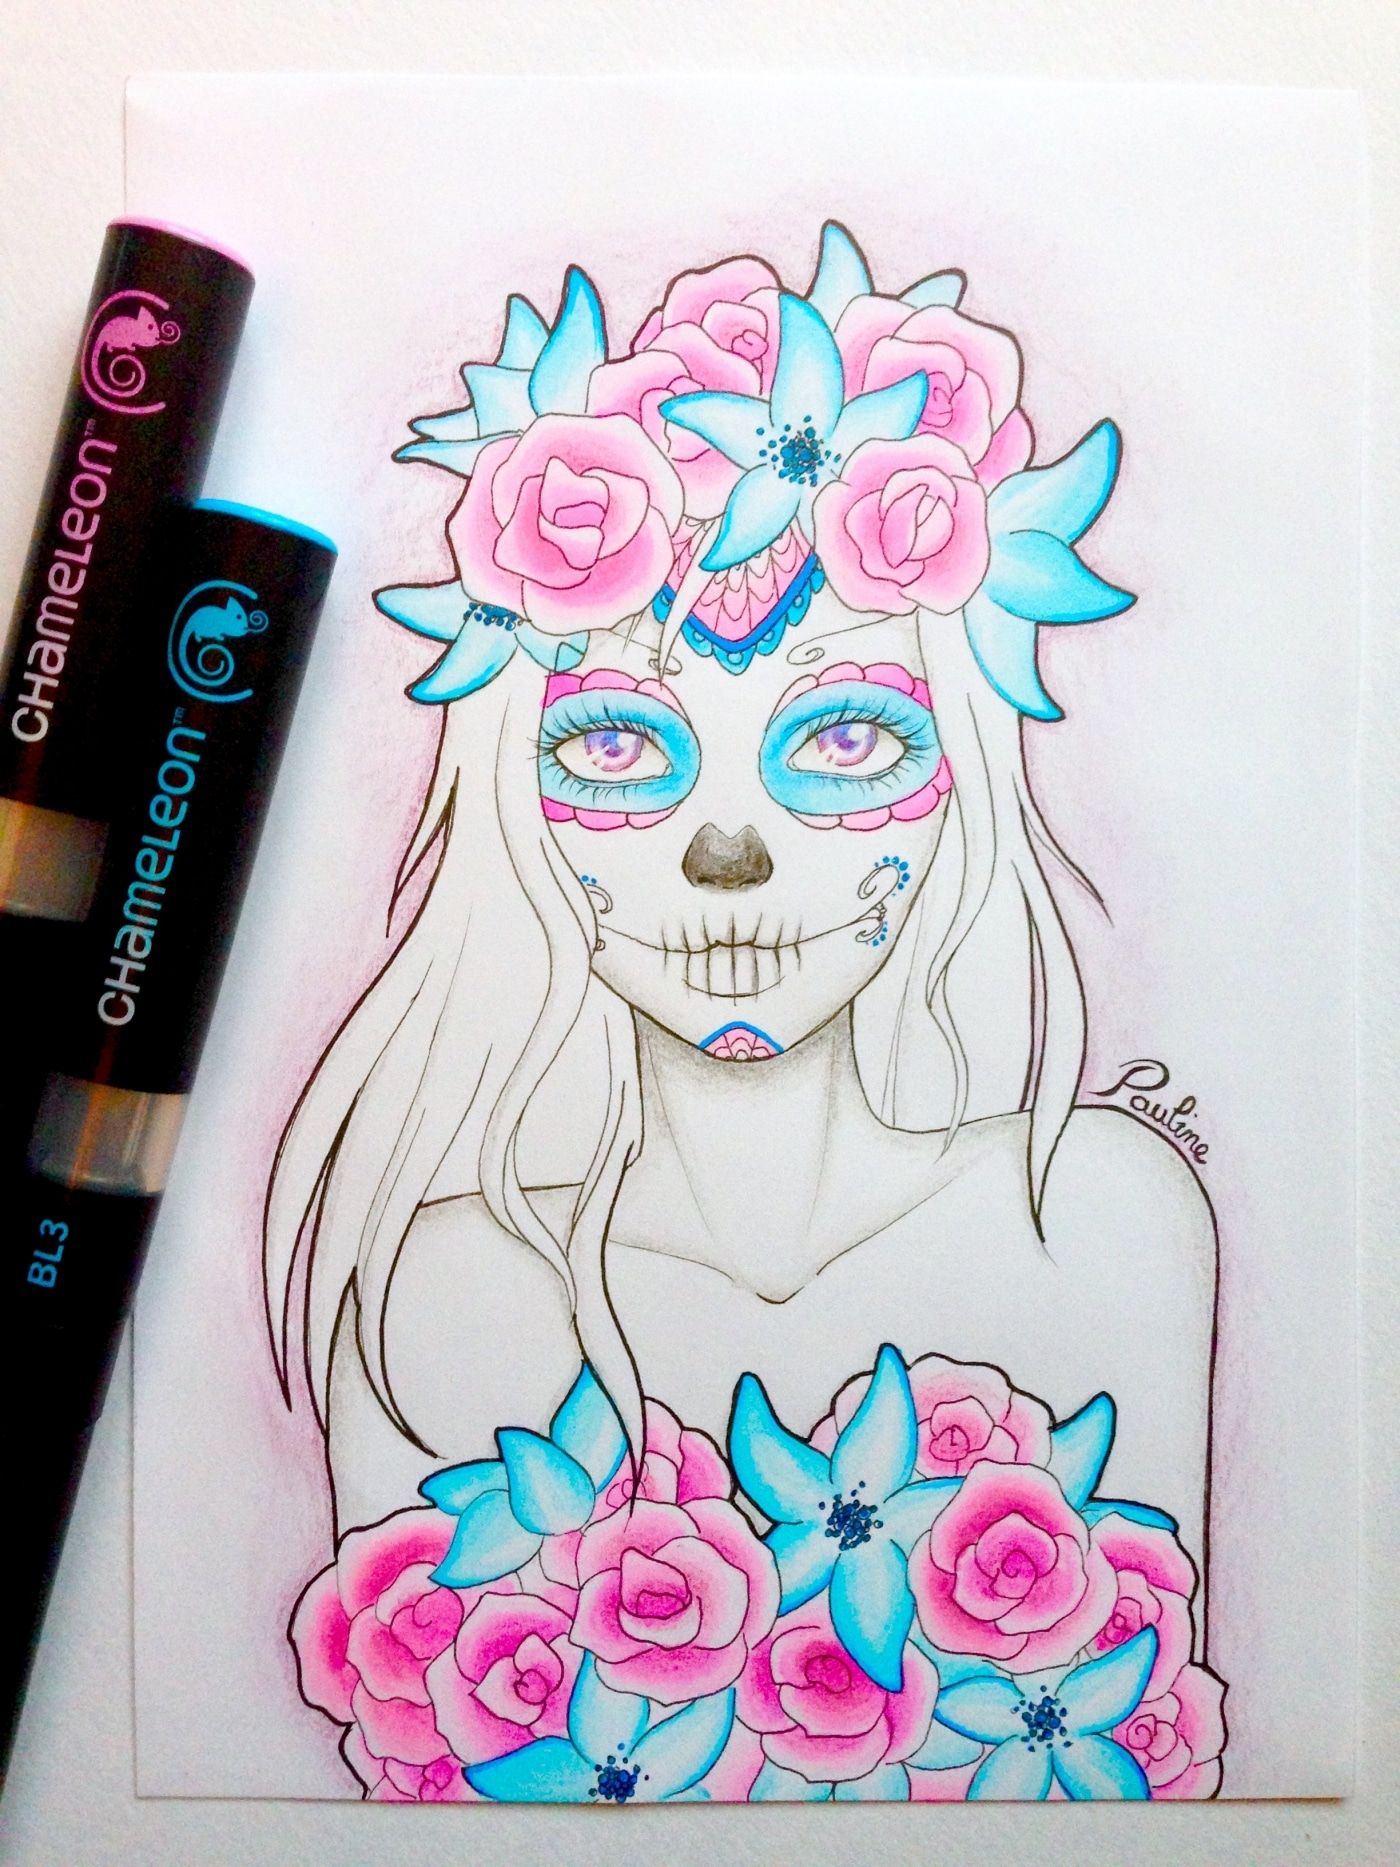 How to Use Alcohol Markers to Draw